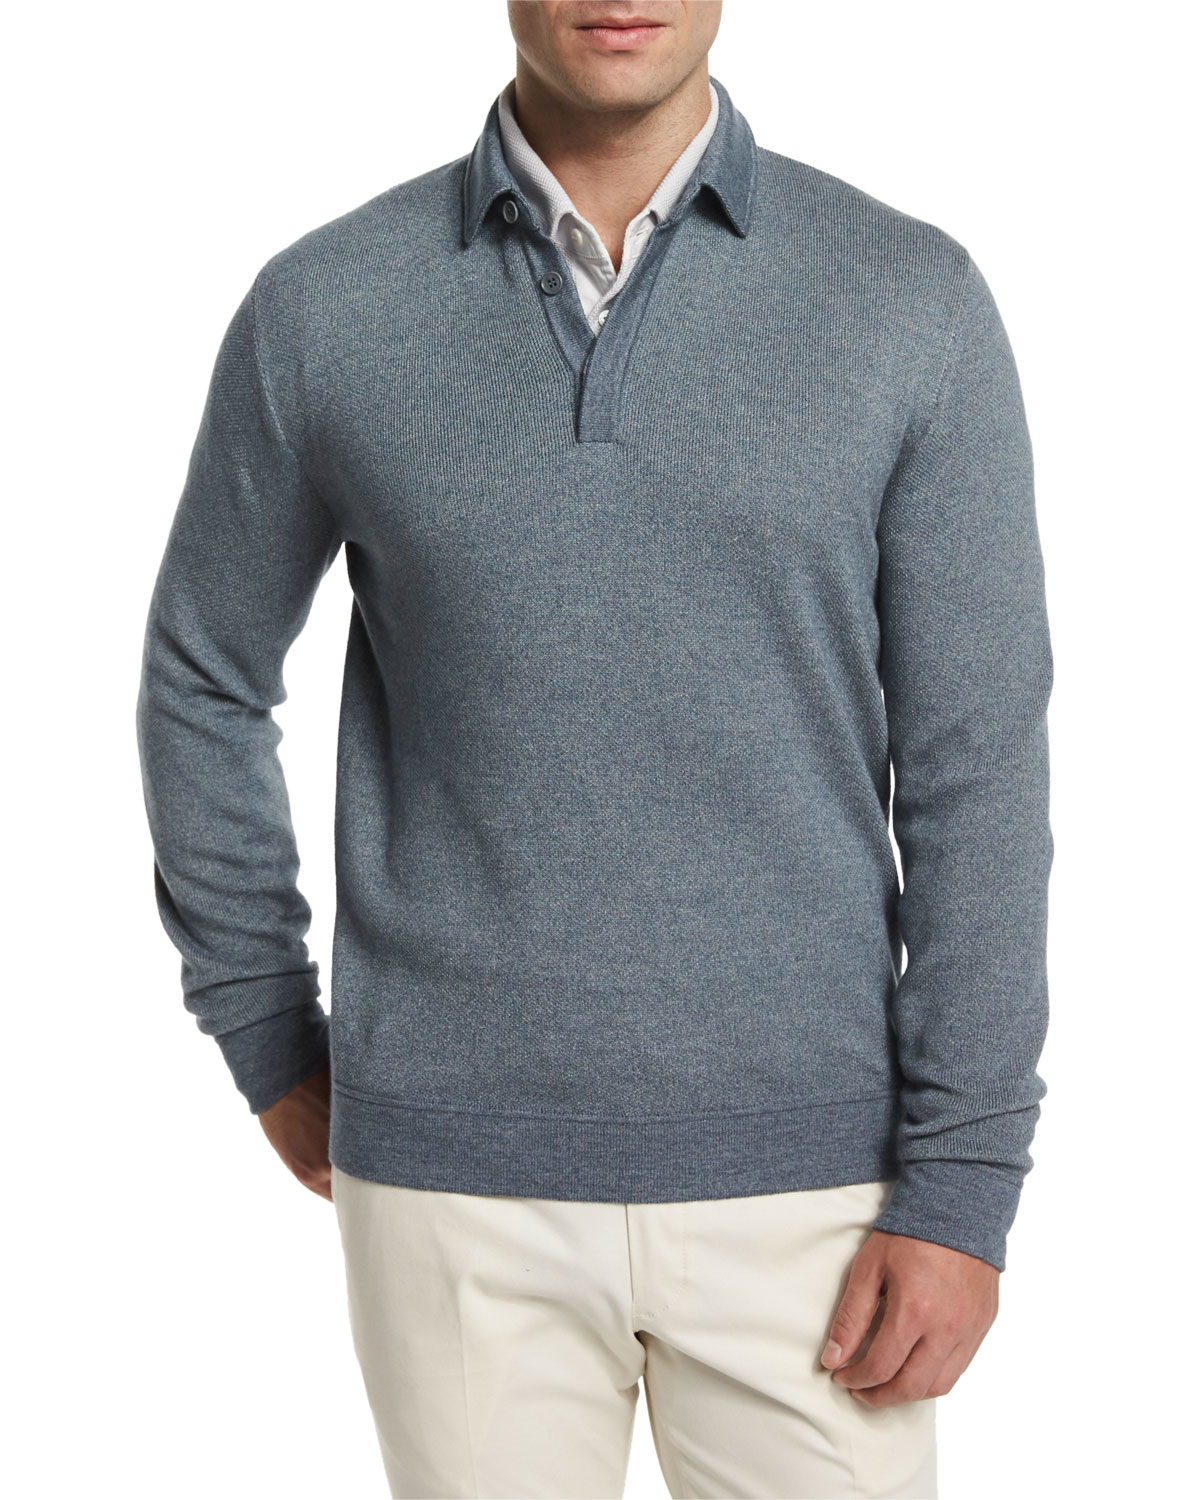 Cashmere And Silk-blend Sweater Loro Piana Outlet Ebay New Arrival Perfect Sale Cheap Price Outlet Genuine 4gleCazmE